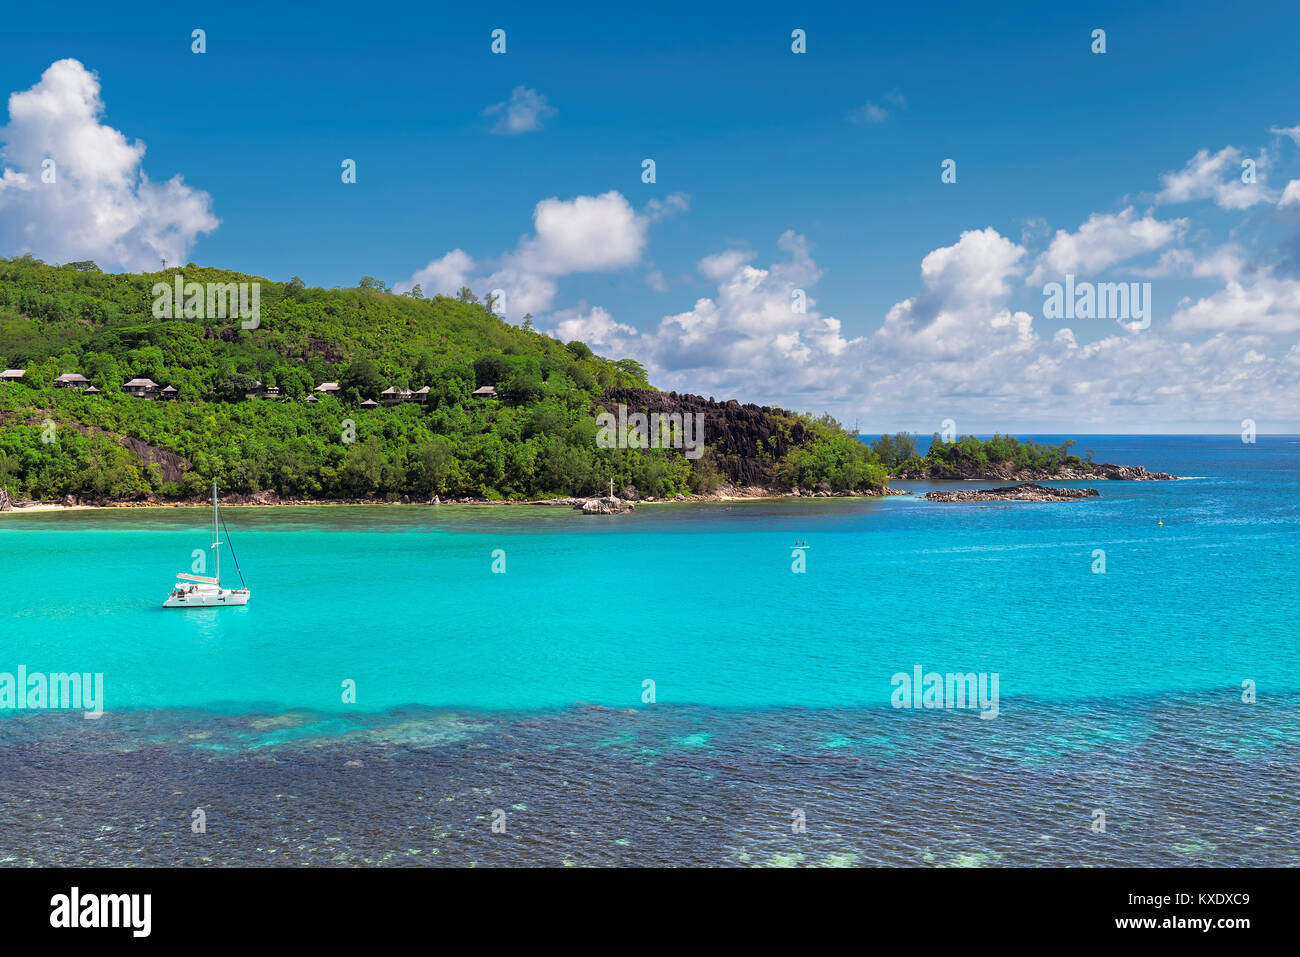 Sailboats in a beautiful bay in Seychelles. - Stock Image